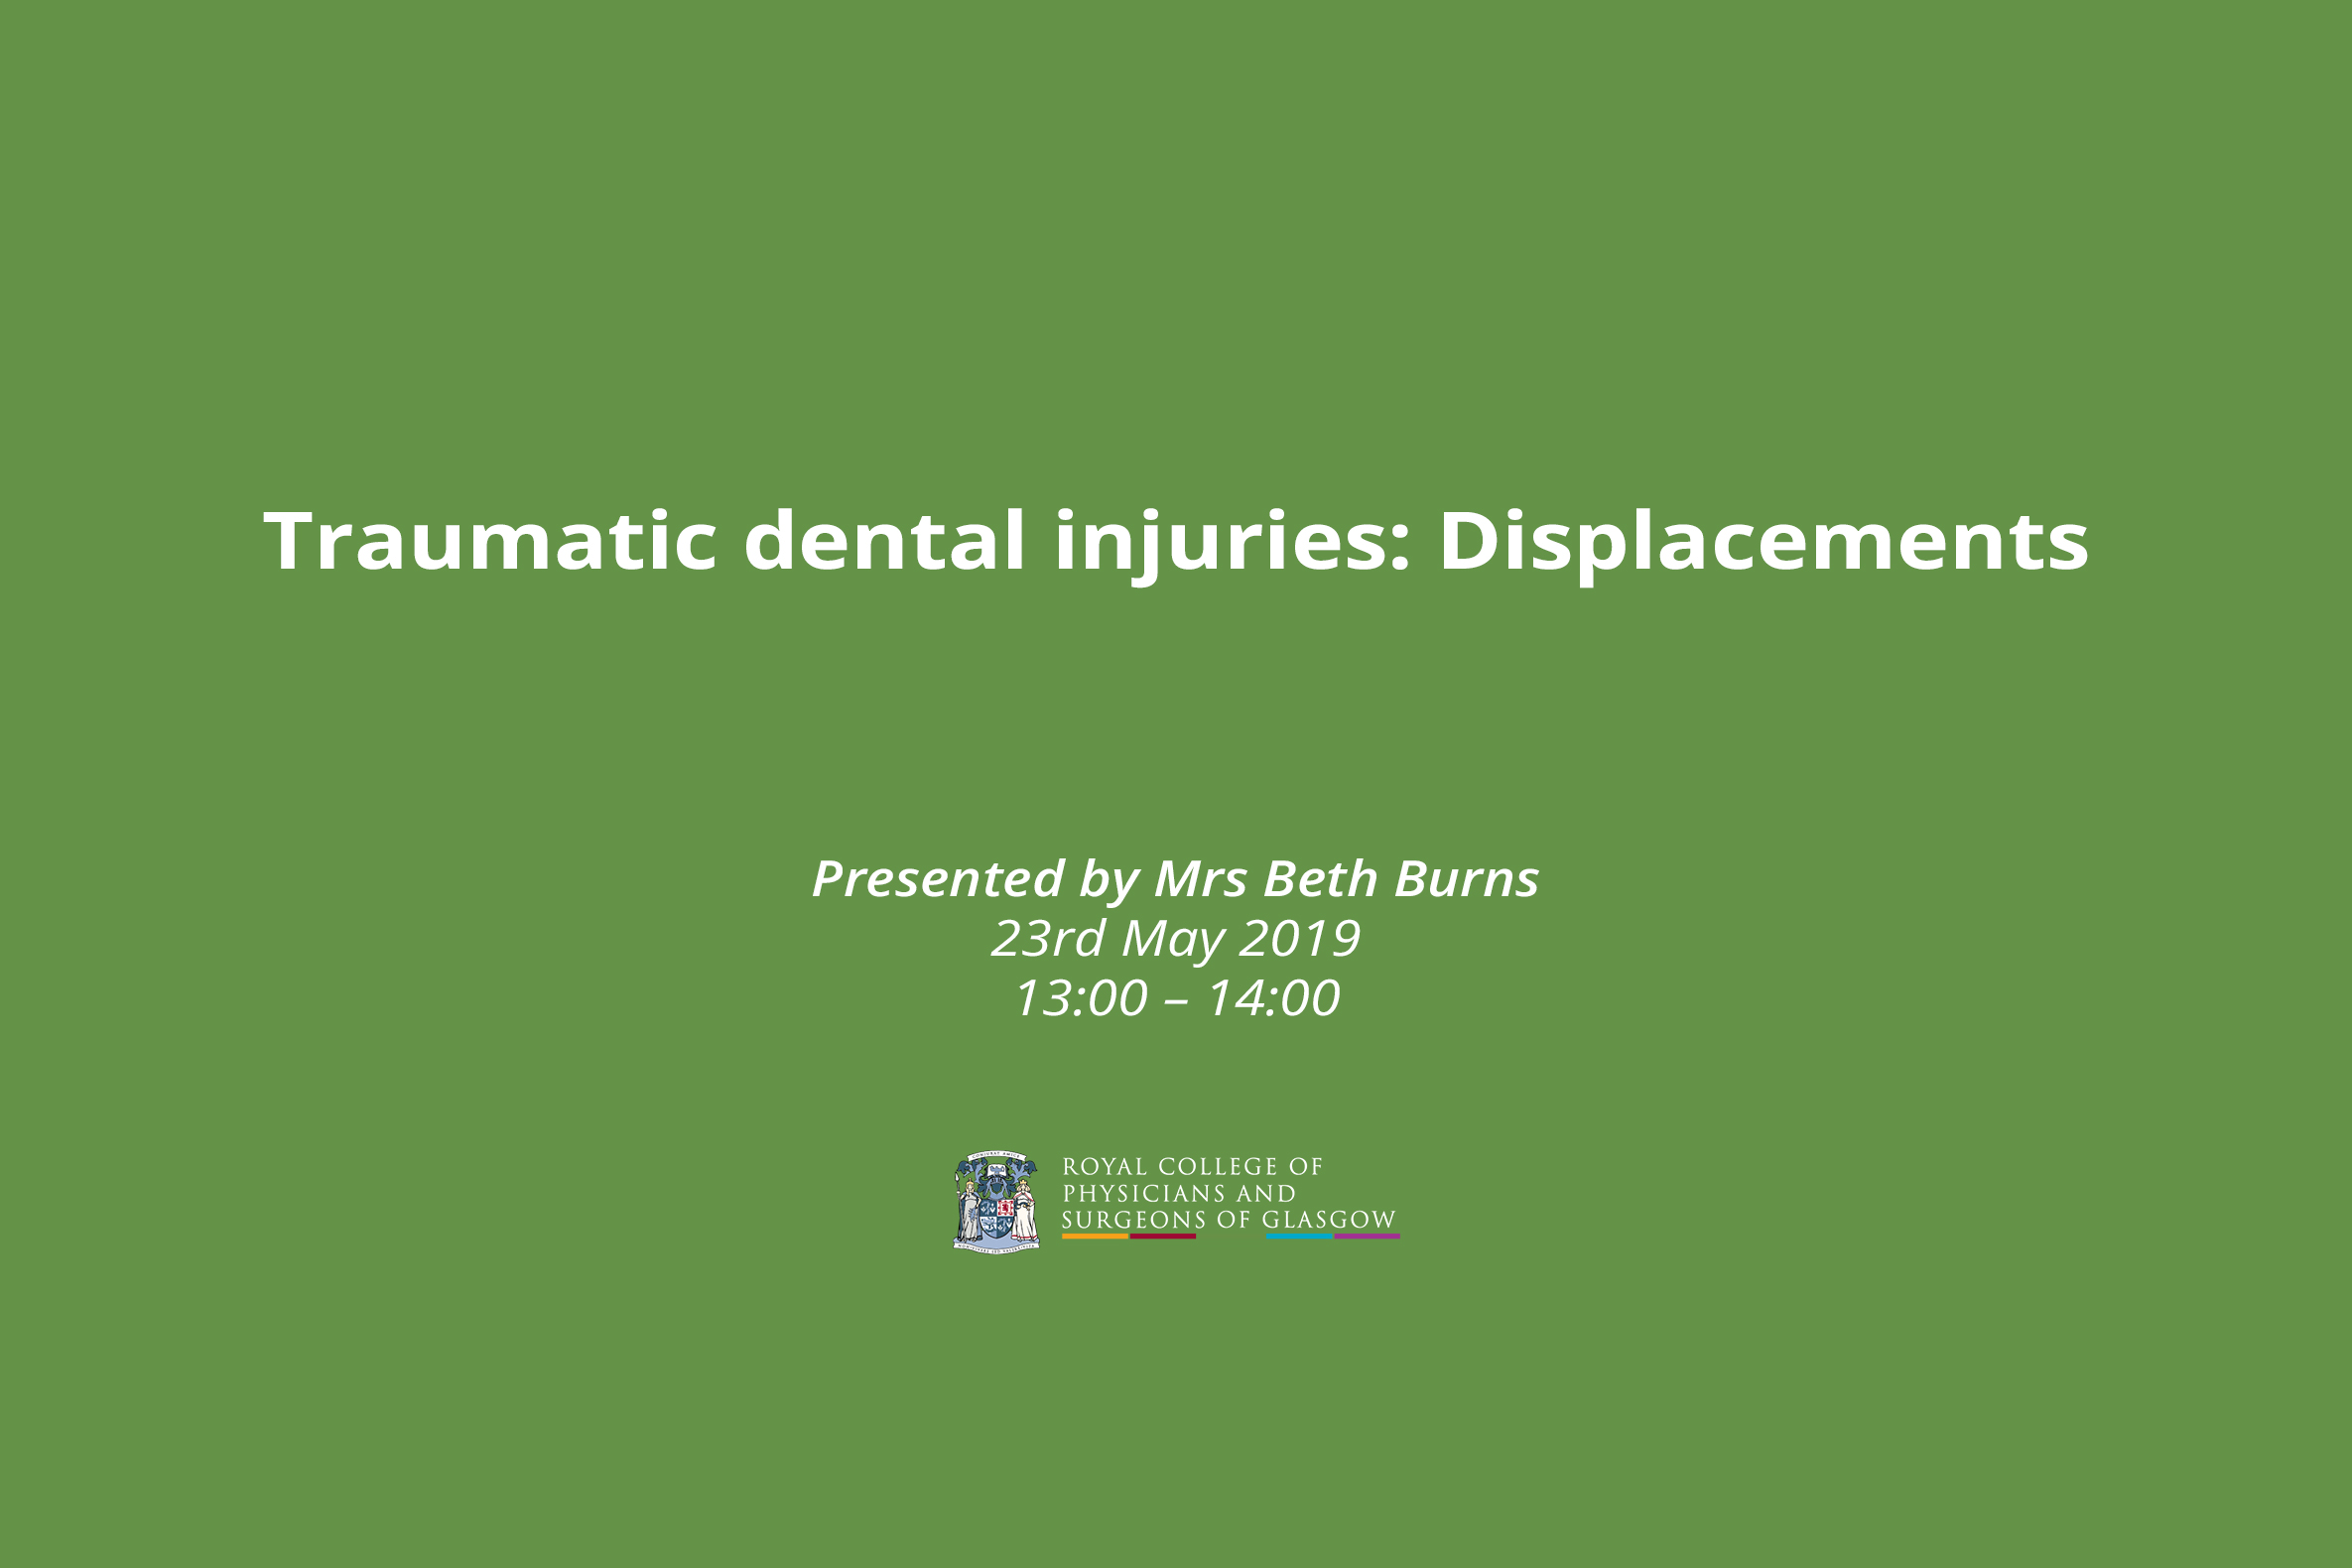 Traumatic dental injuries: Displacements